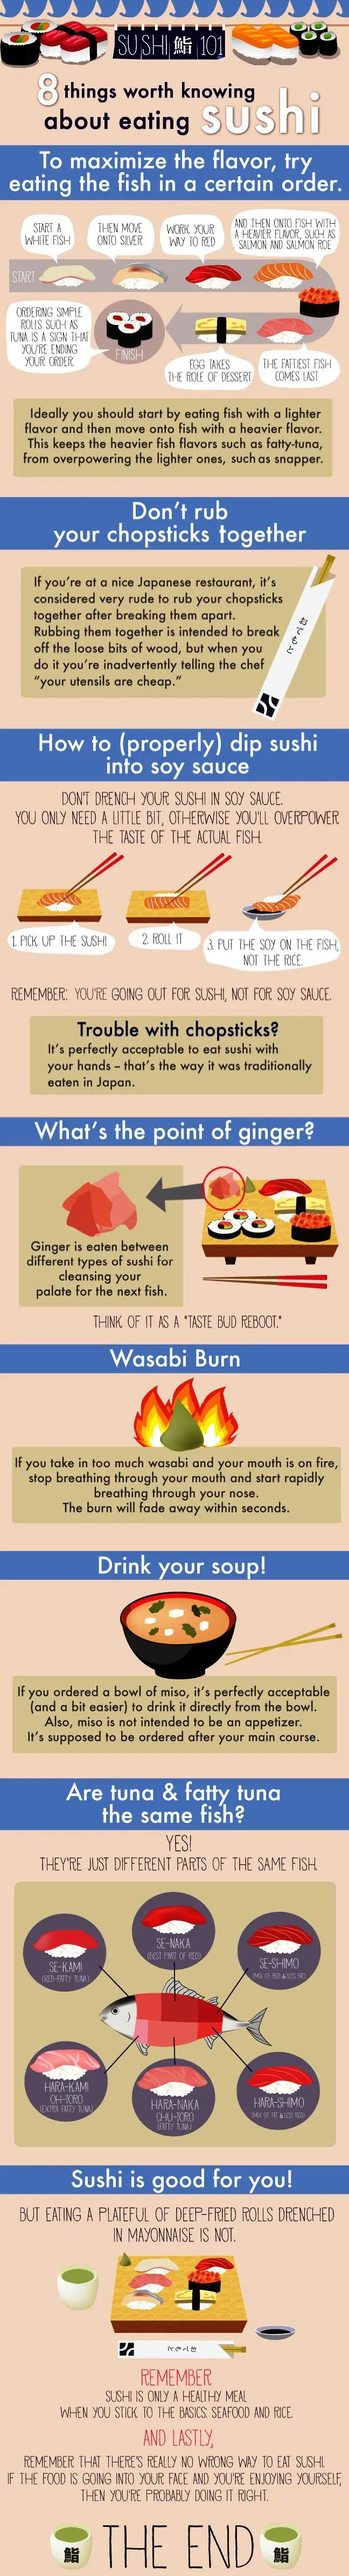 8 Things Worth Knowing About Eating Sushi